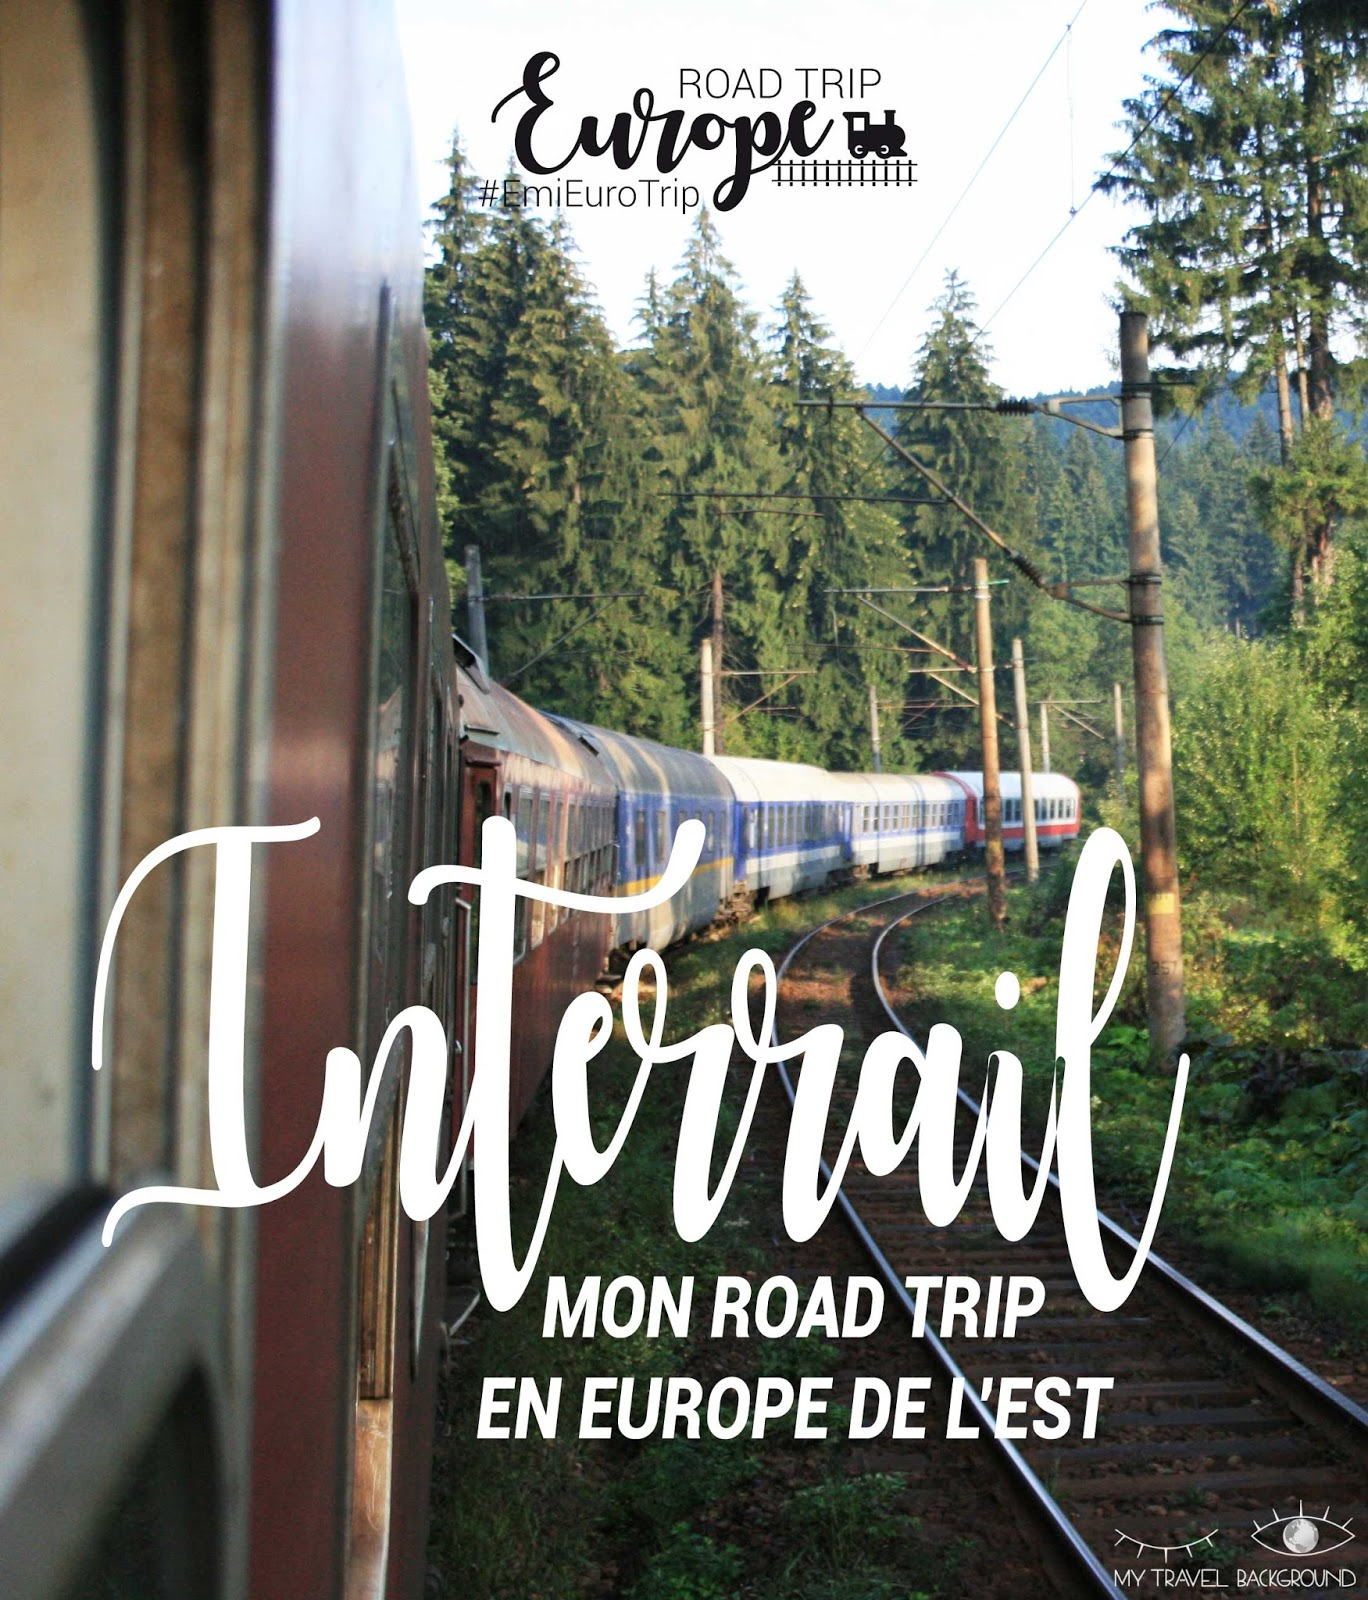 My Travel Background : mon Road Trip en Europe en train avec le pass Interrail, itinéraire, budget & co !